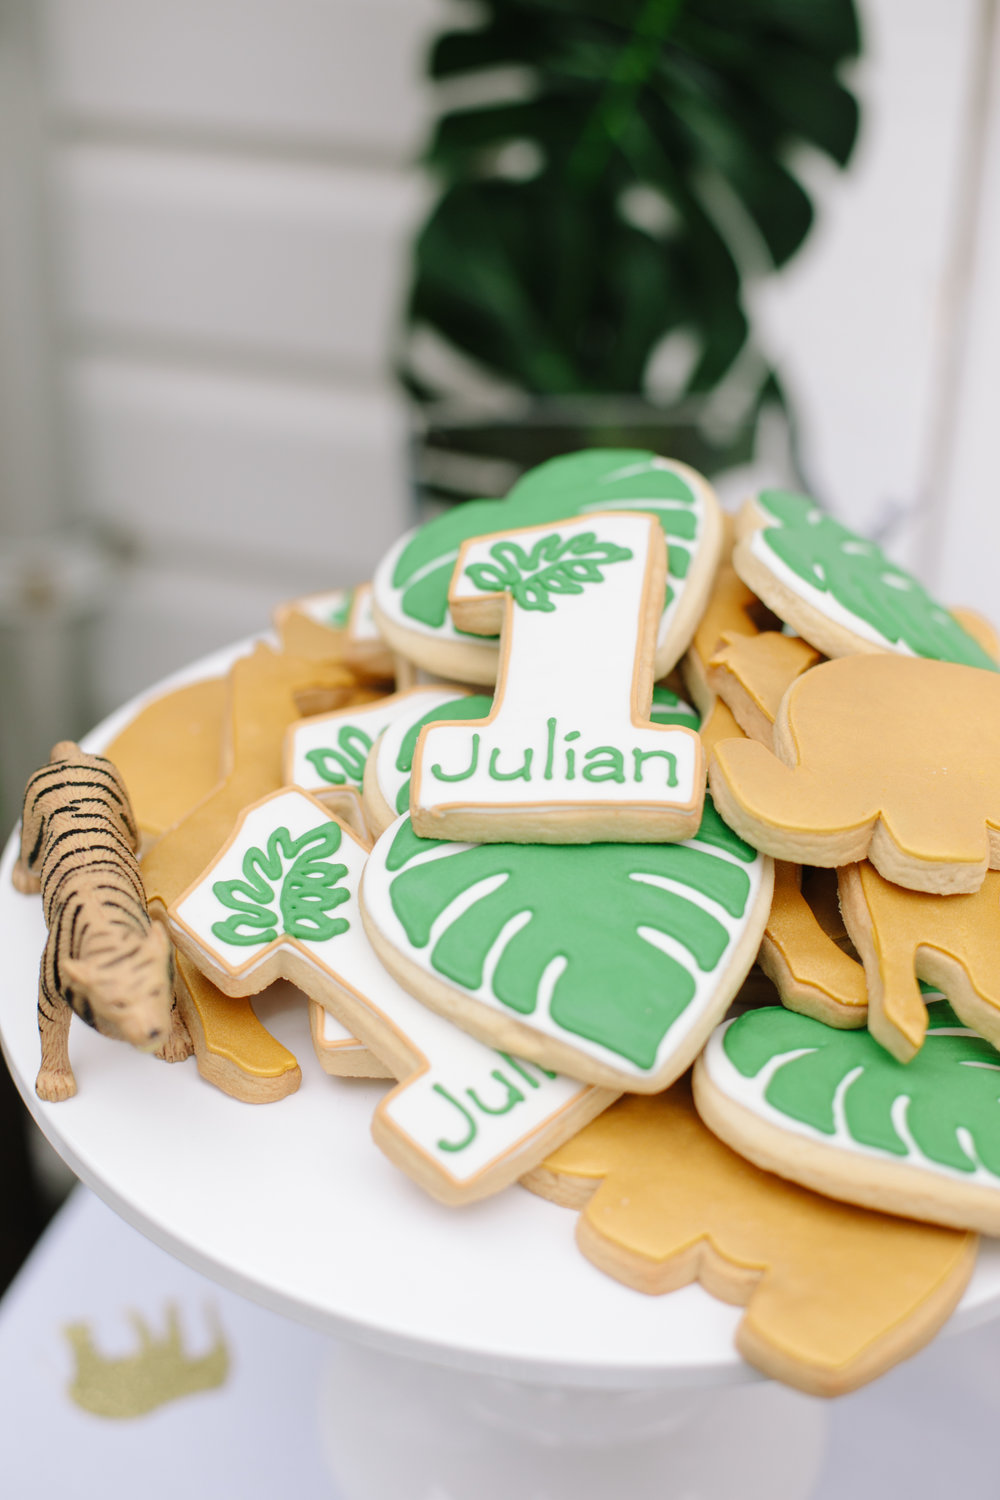 AngelaDatreEvents_JulianFirstBirthday_090118-27.jpg